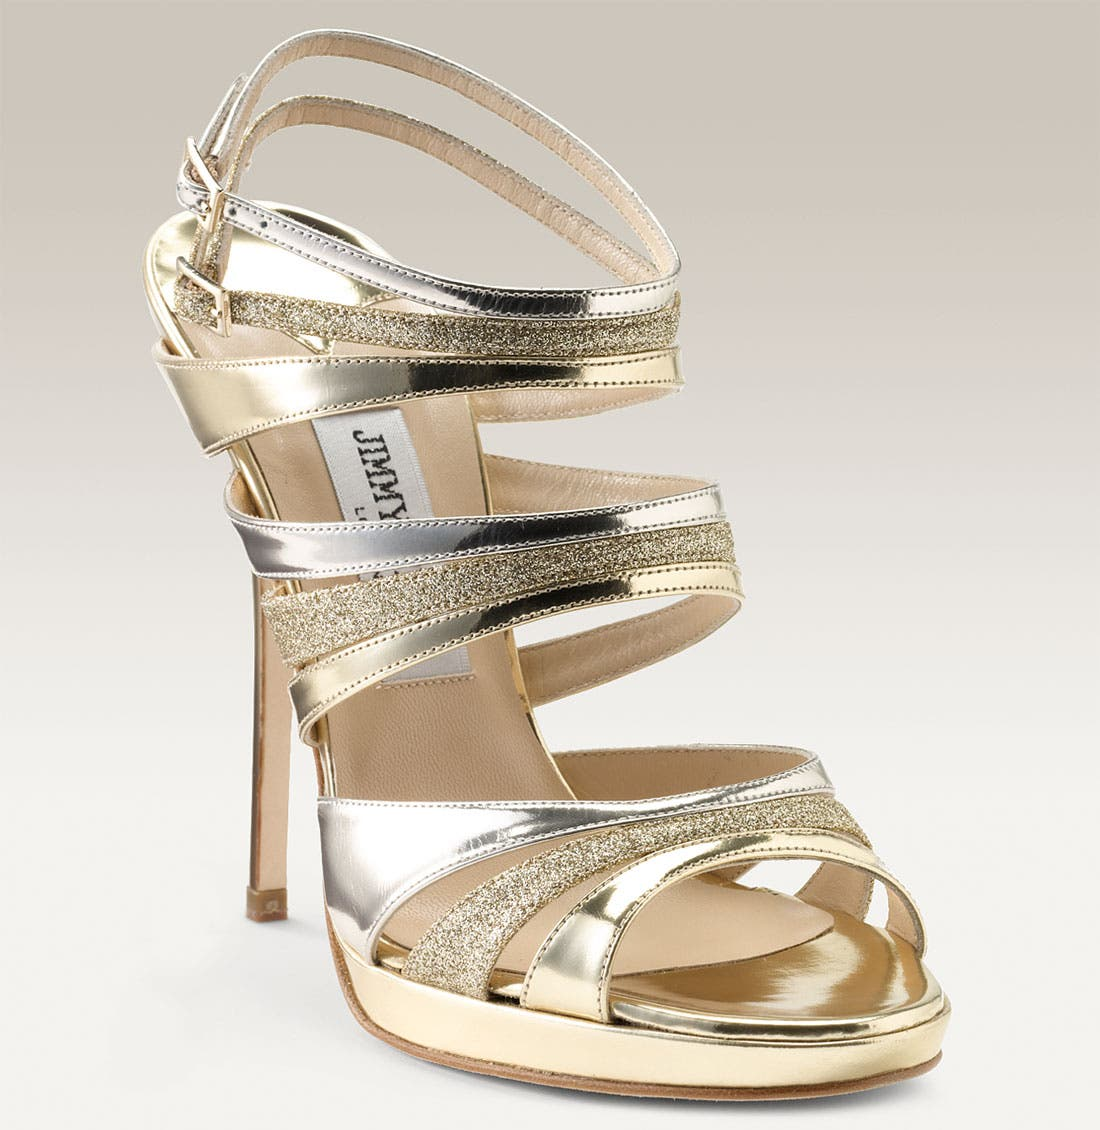 Main Image - Jimmy Choo 'Buzz' Caged Sandal